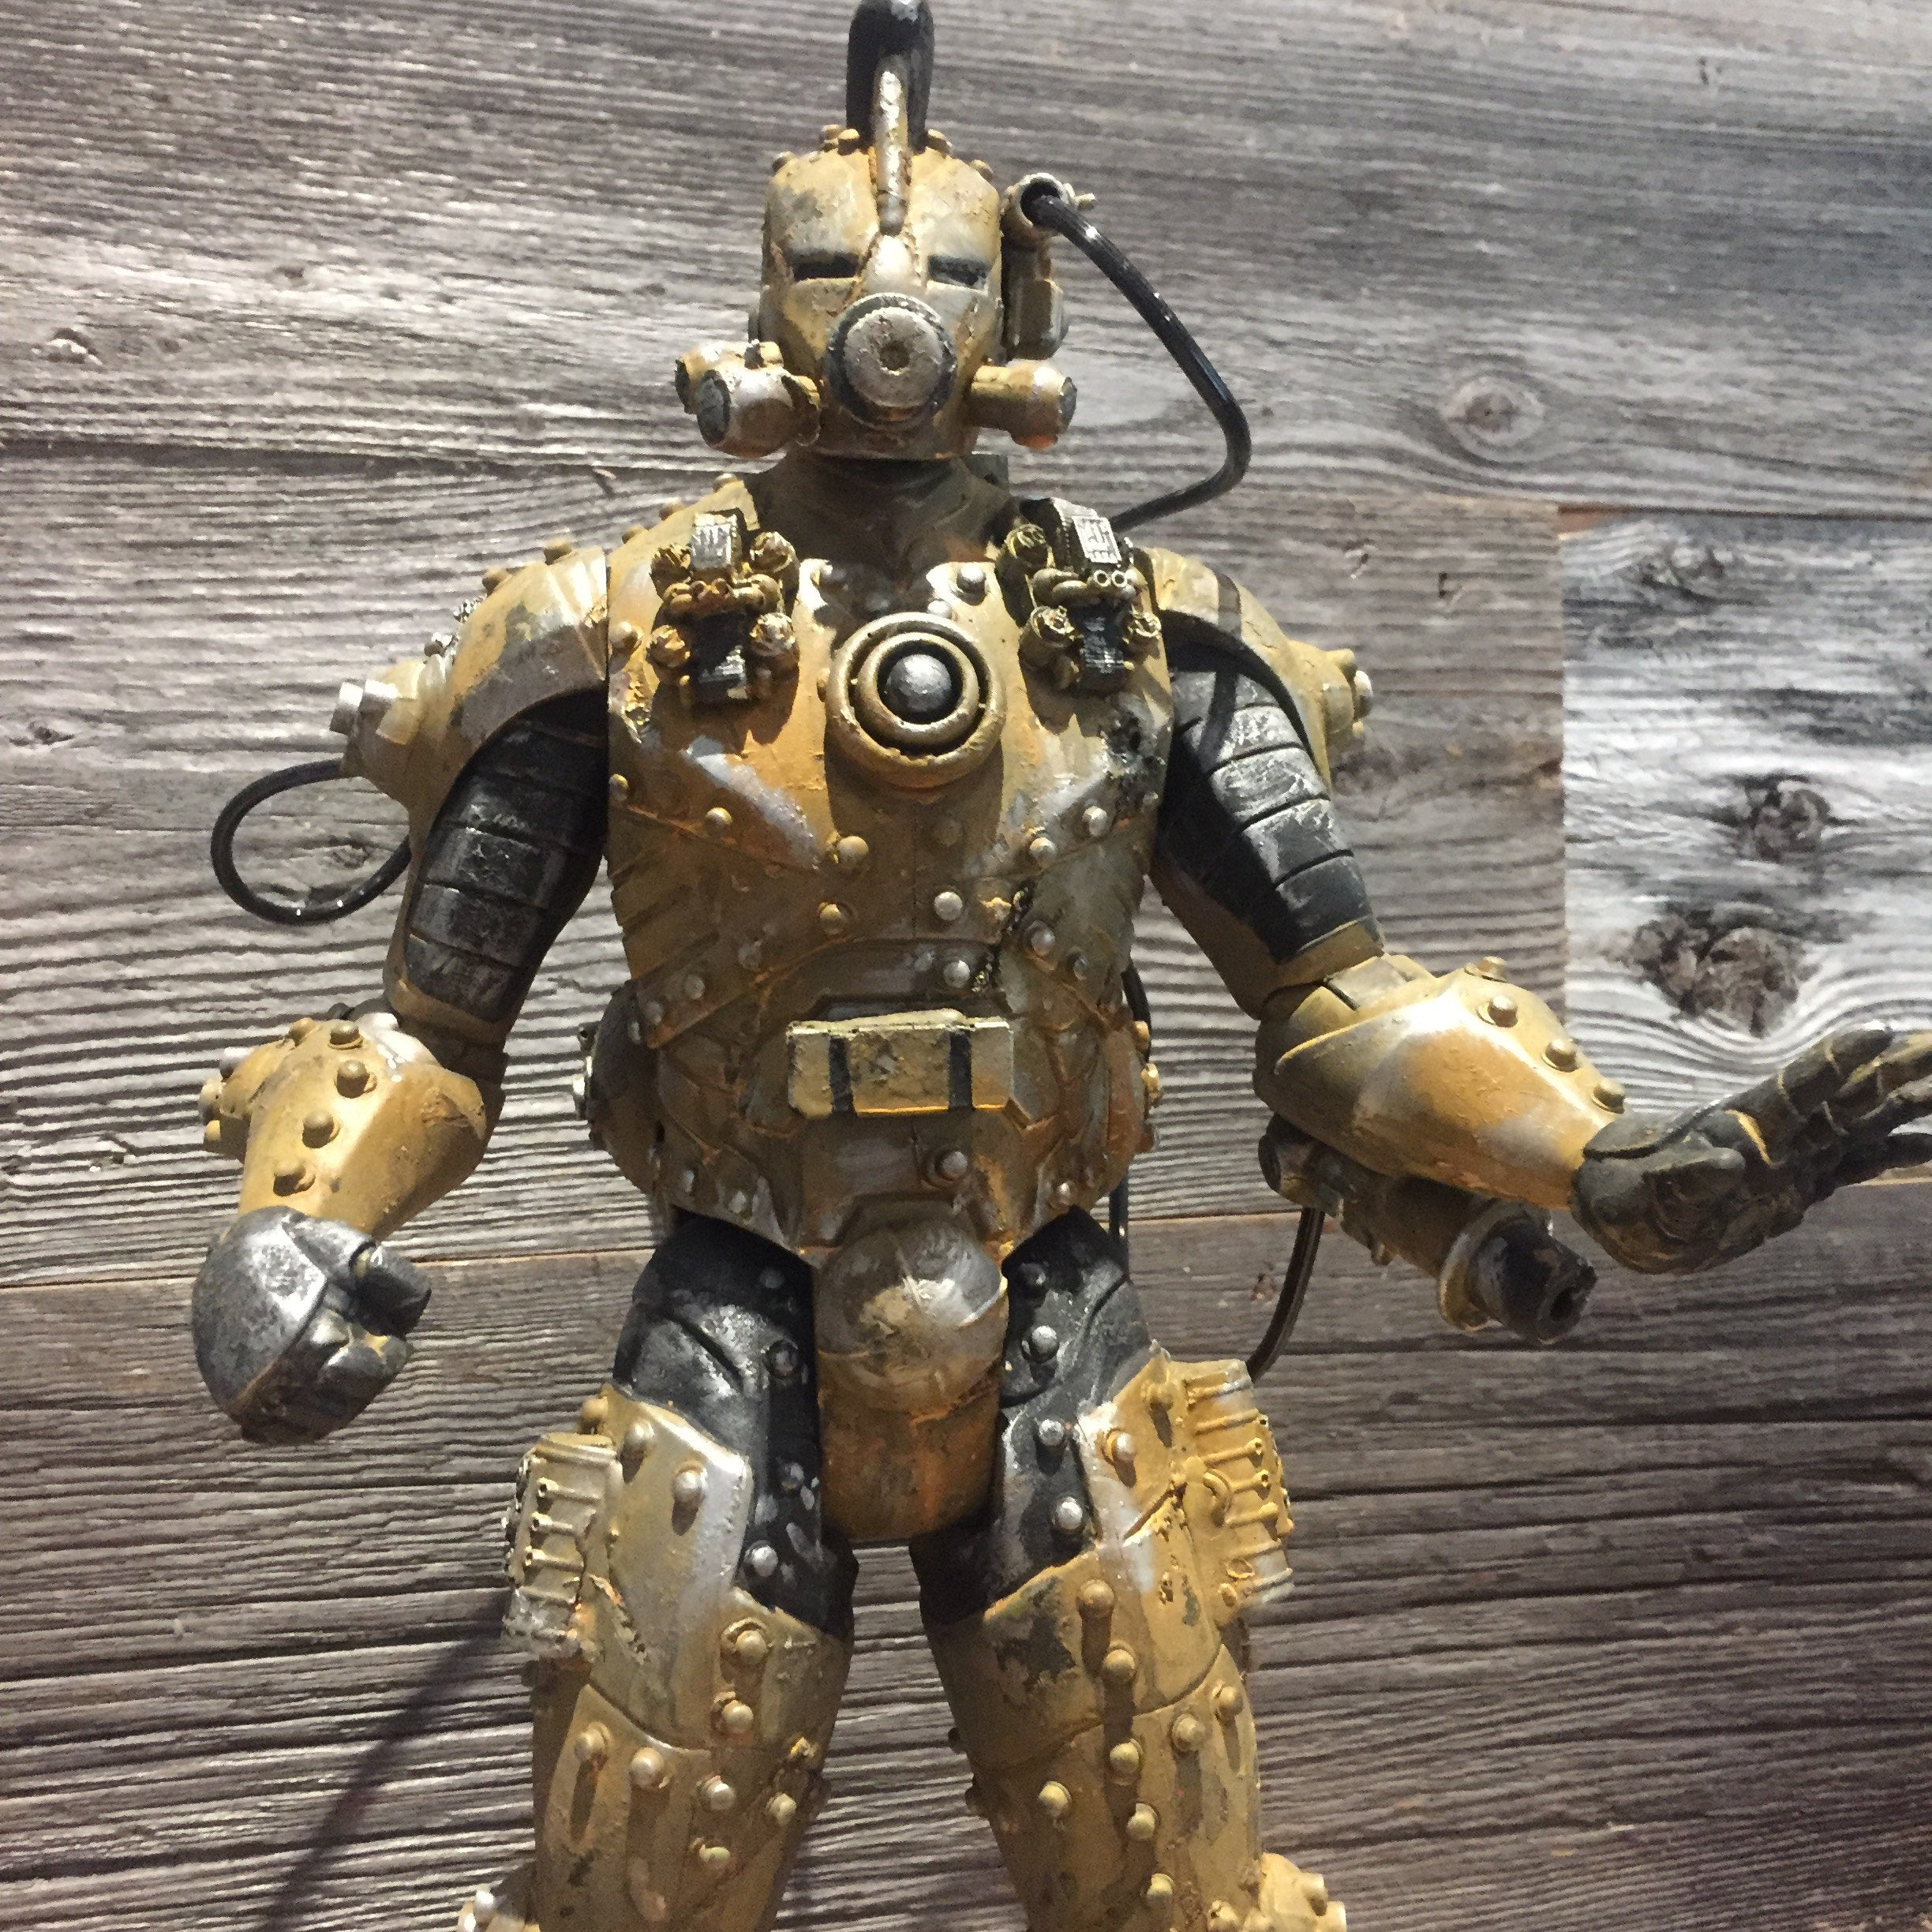 Custom Iron Man Action Figure Gundam MAk Gunpla kitbash Diesel punk